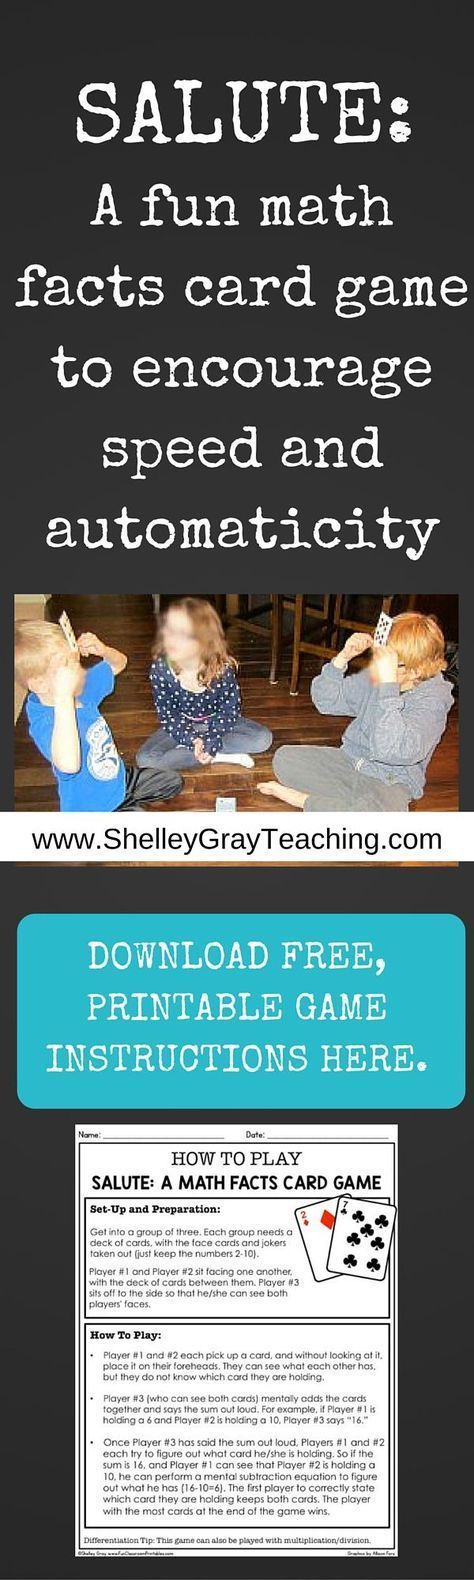 Salute is a fantastic card game to encourage speed and automaticity with basic math facts. This game works with addition/subtraction or multiplication/division. Click to get free printable game instructions. #learnmathfacts